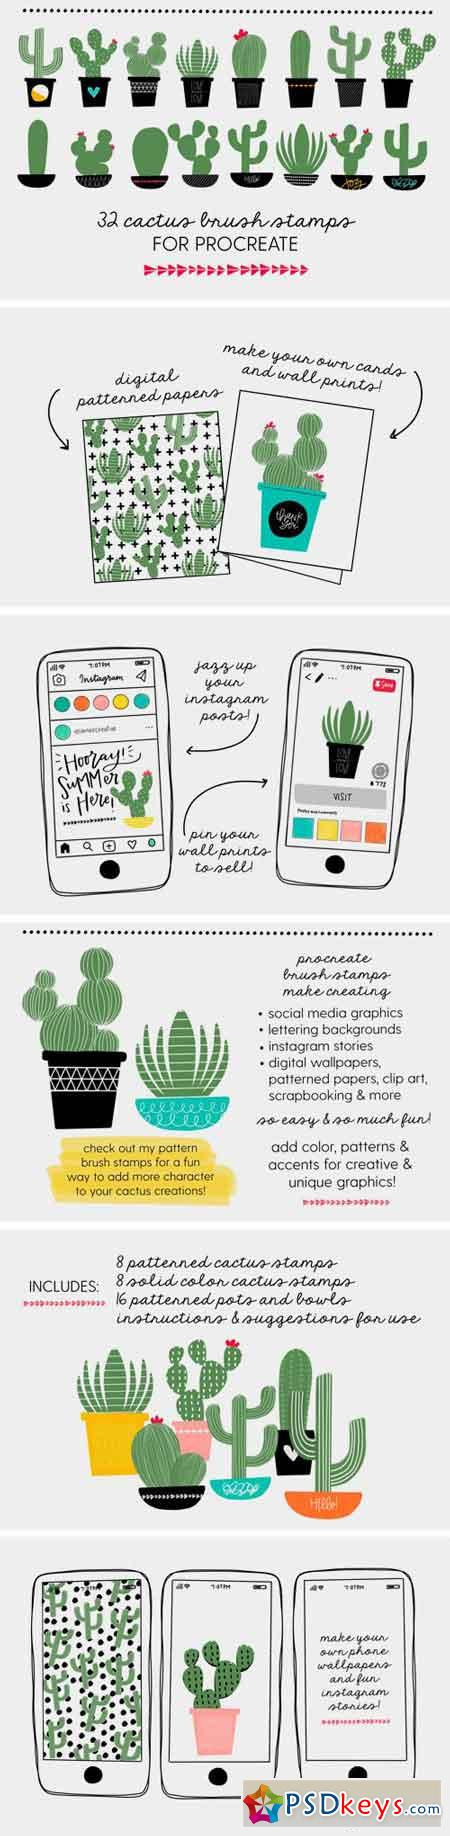 Cactus Brush Stamps for Procreate 2393324